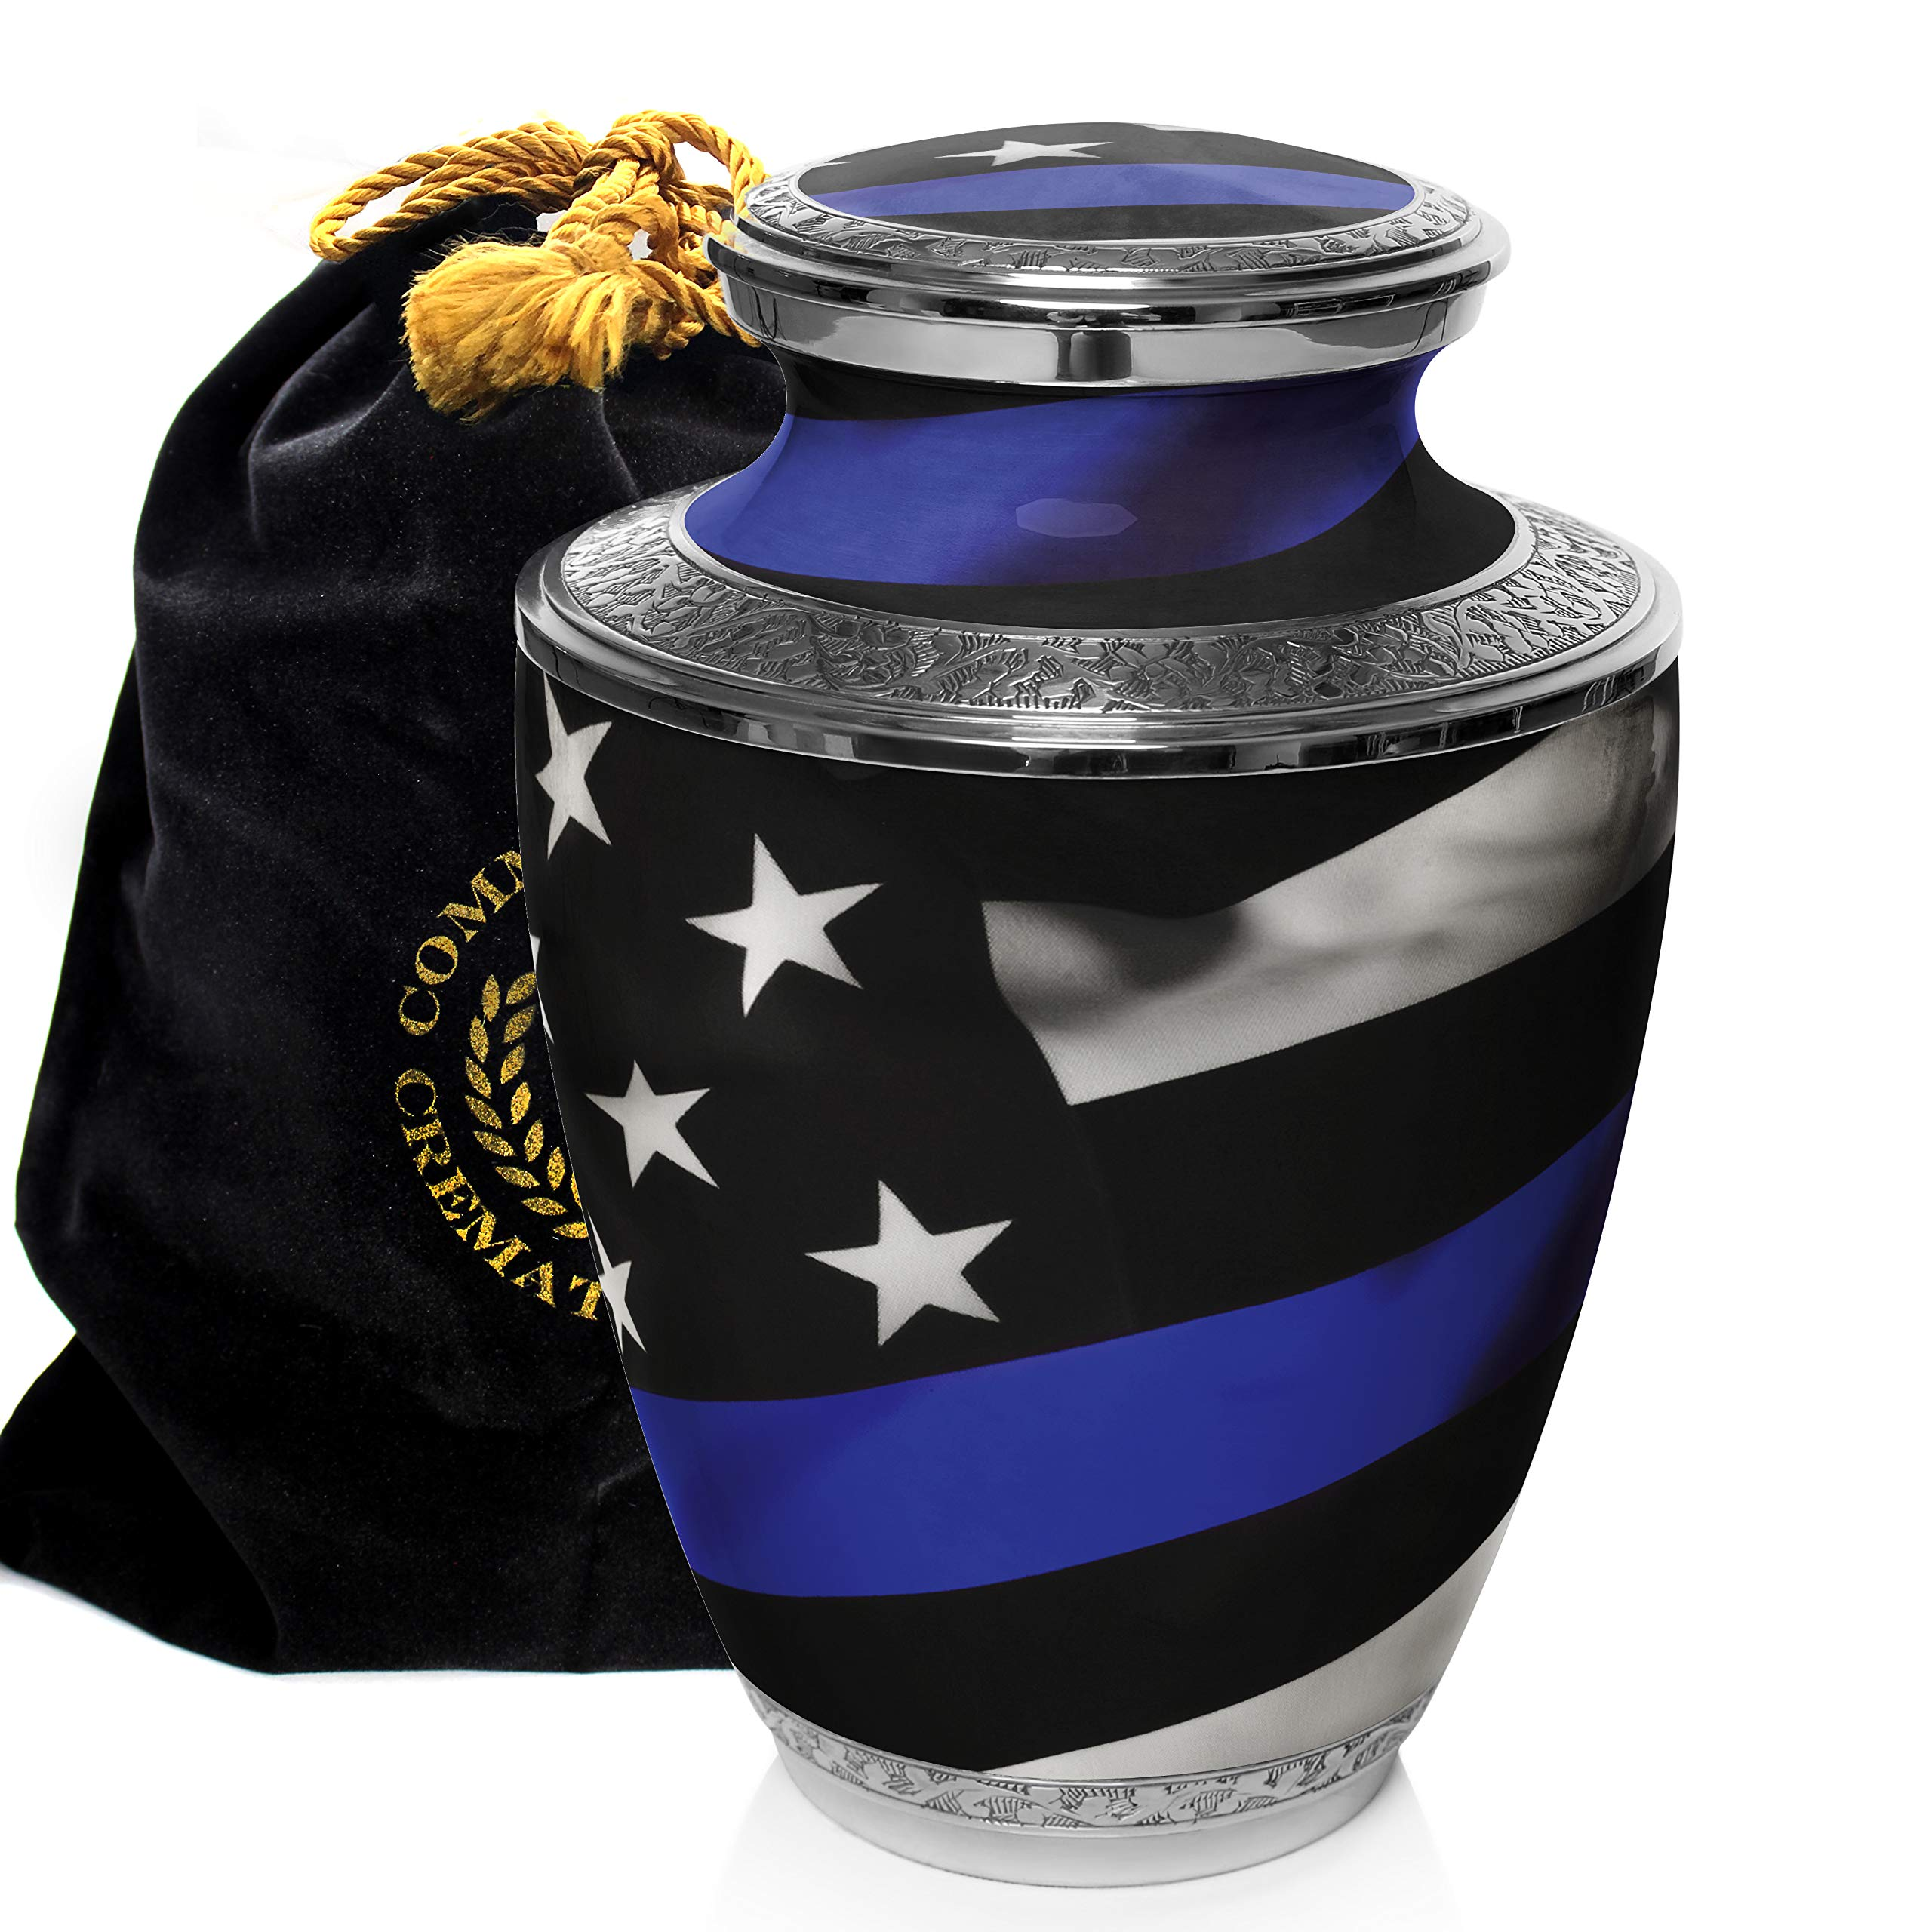 Blue Line Flag - Police and Law Enforcement Cremation Urns for Adult Ashes - for Funeral, Niche, Columbarium or Burial - Urns for Ashes - Large, Medium, Extra Large and Keepsake (Large/Adult)